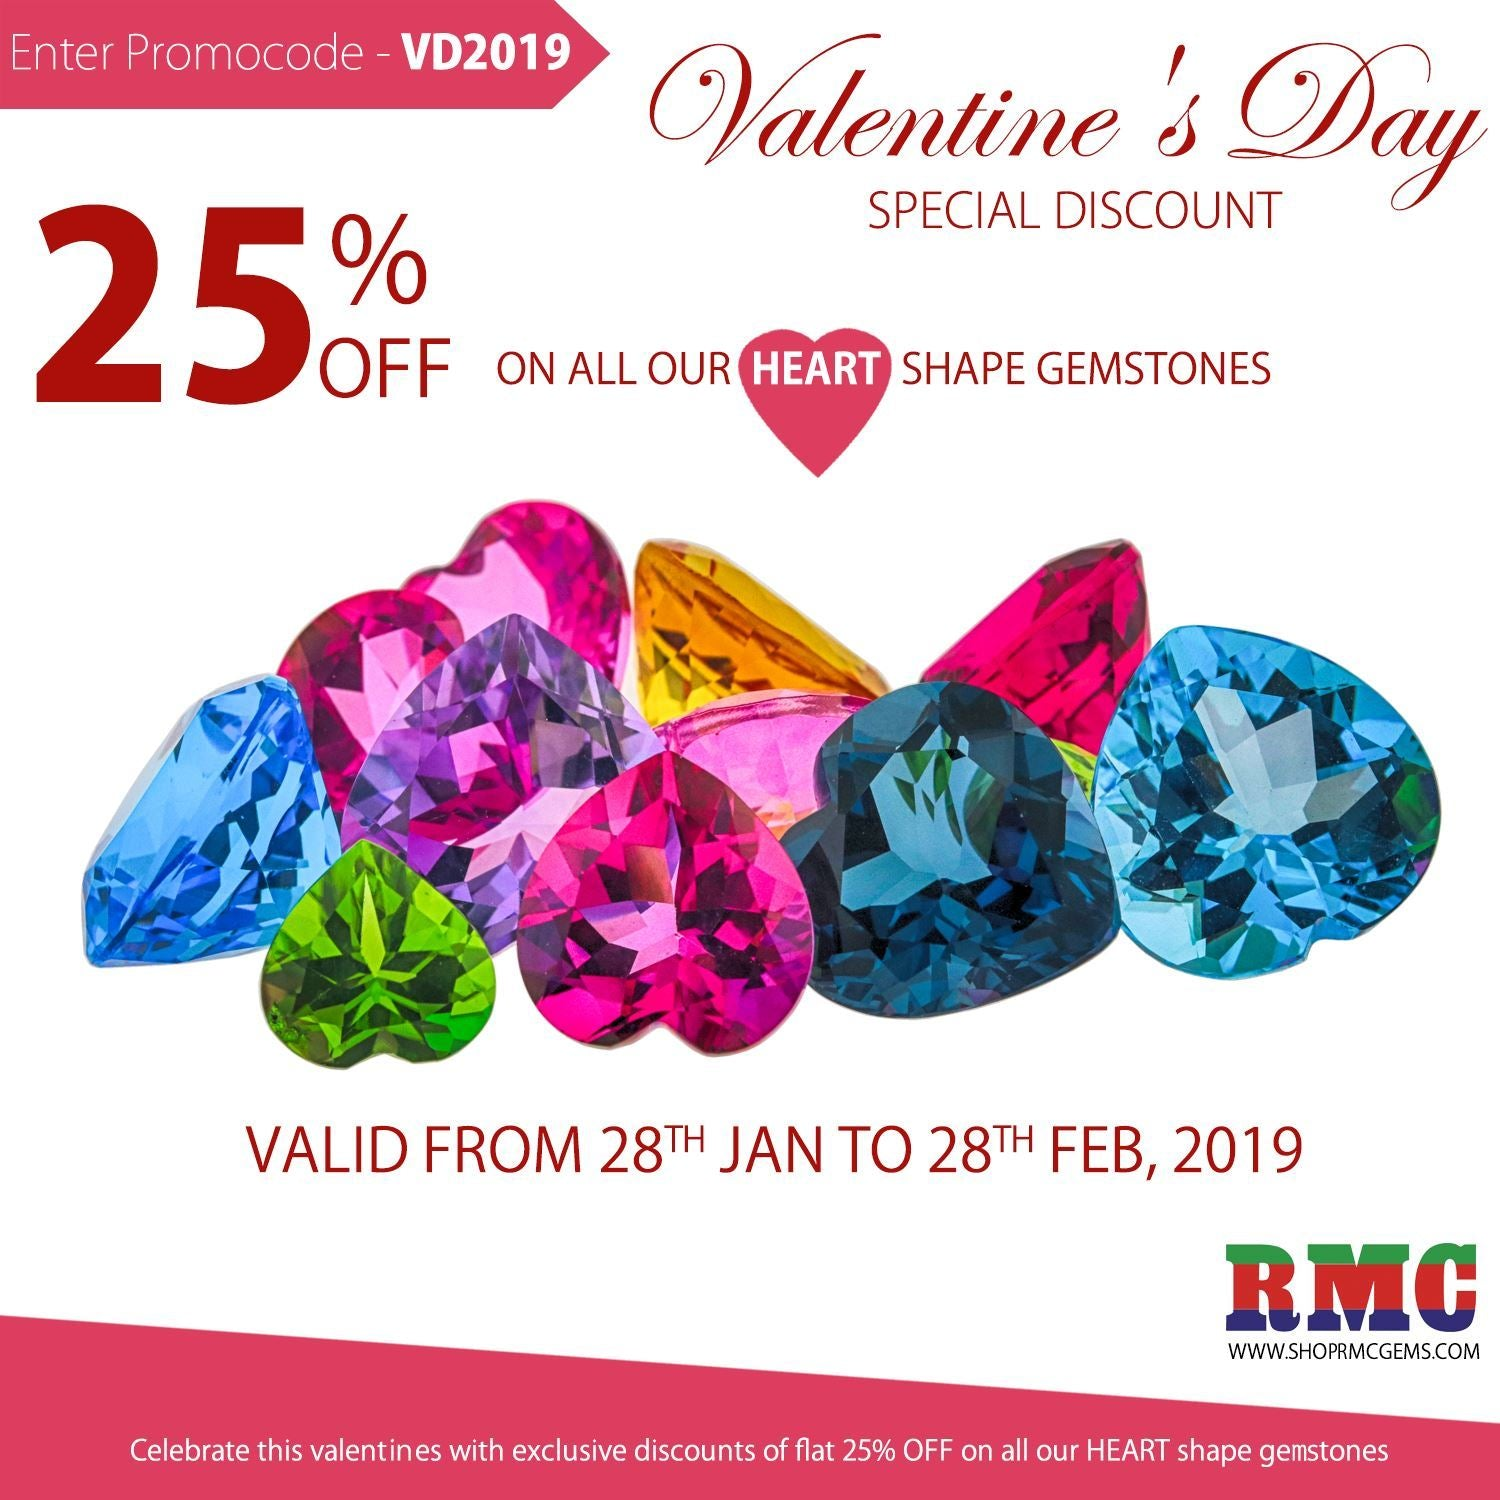 25% Off On All Our Heart Shape Gemstones On This Valentine's Day!